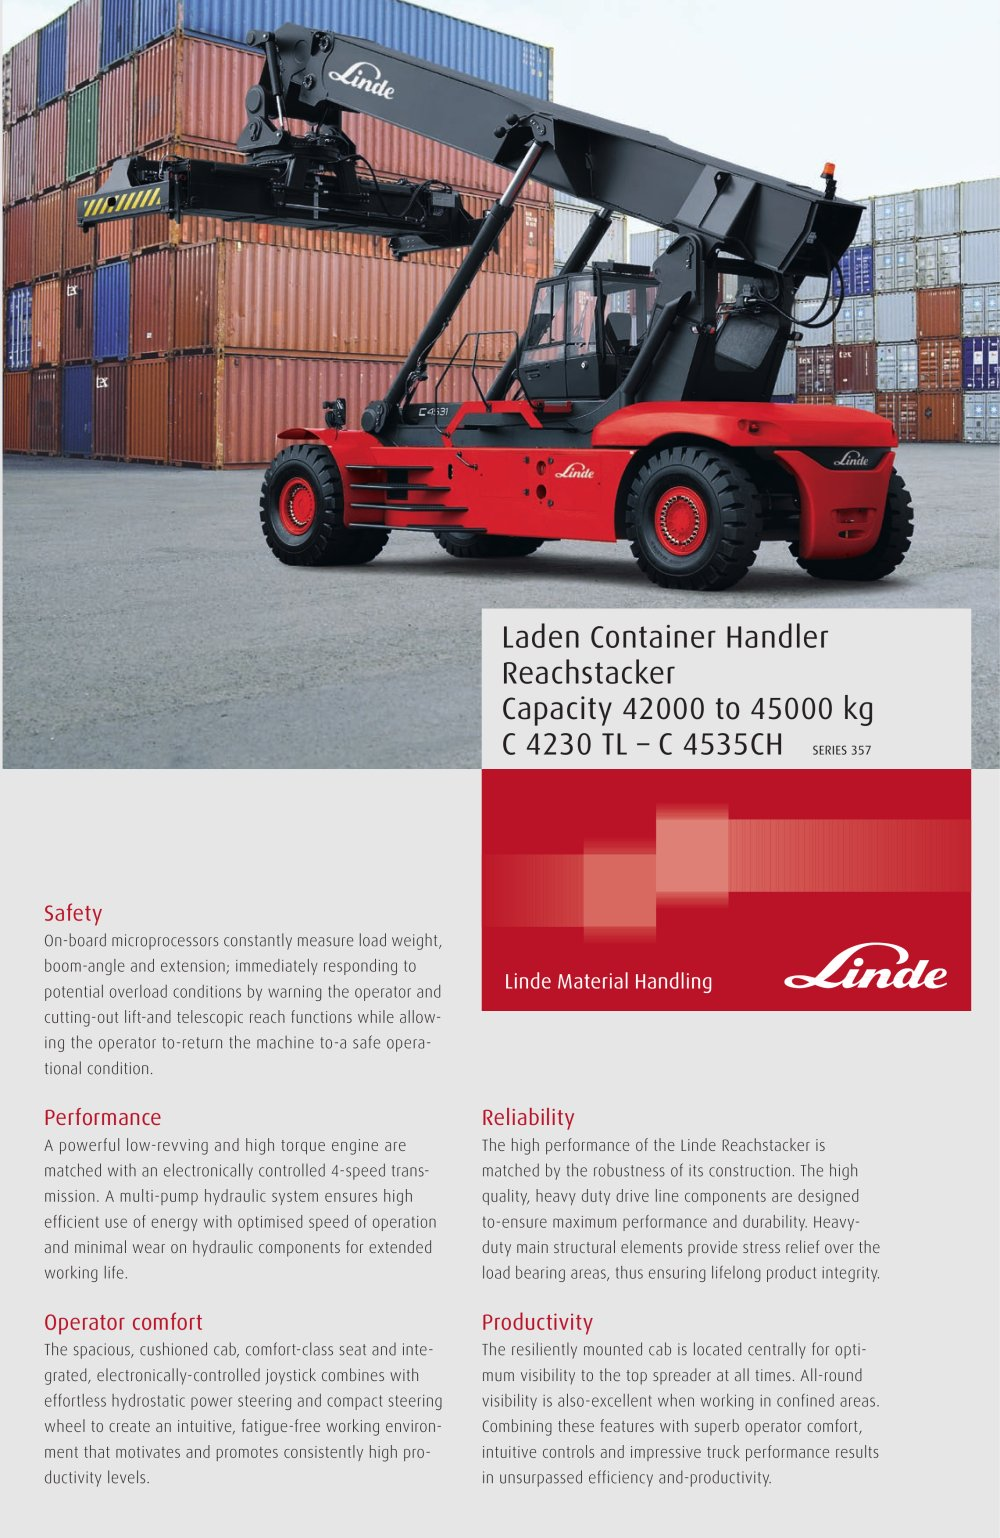 Linde manuals array reach stacker c 4230 4535 pdf linde heavy truck division pdf rh pdf nauticexpo fandeluxe Gallery